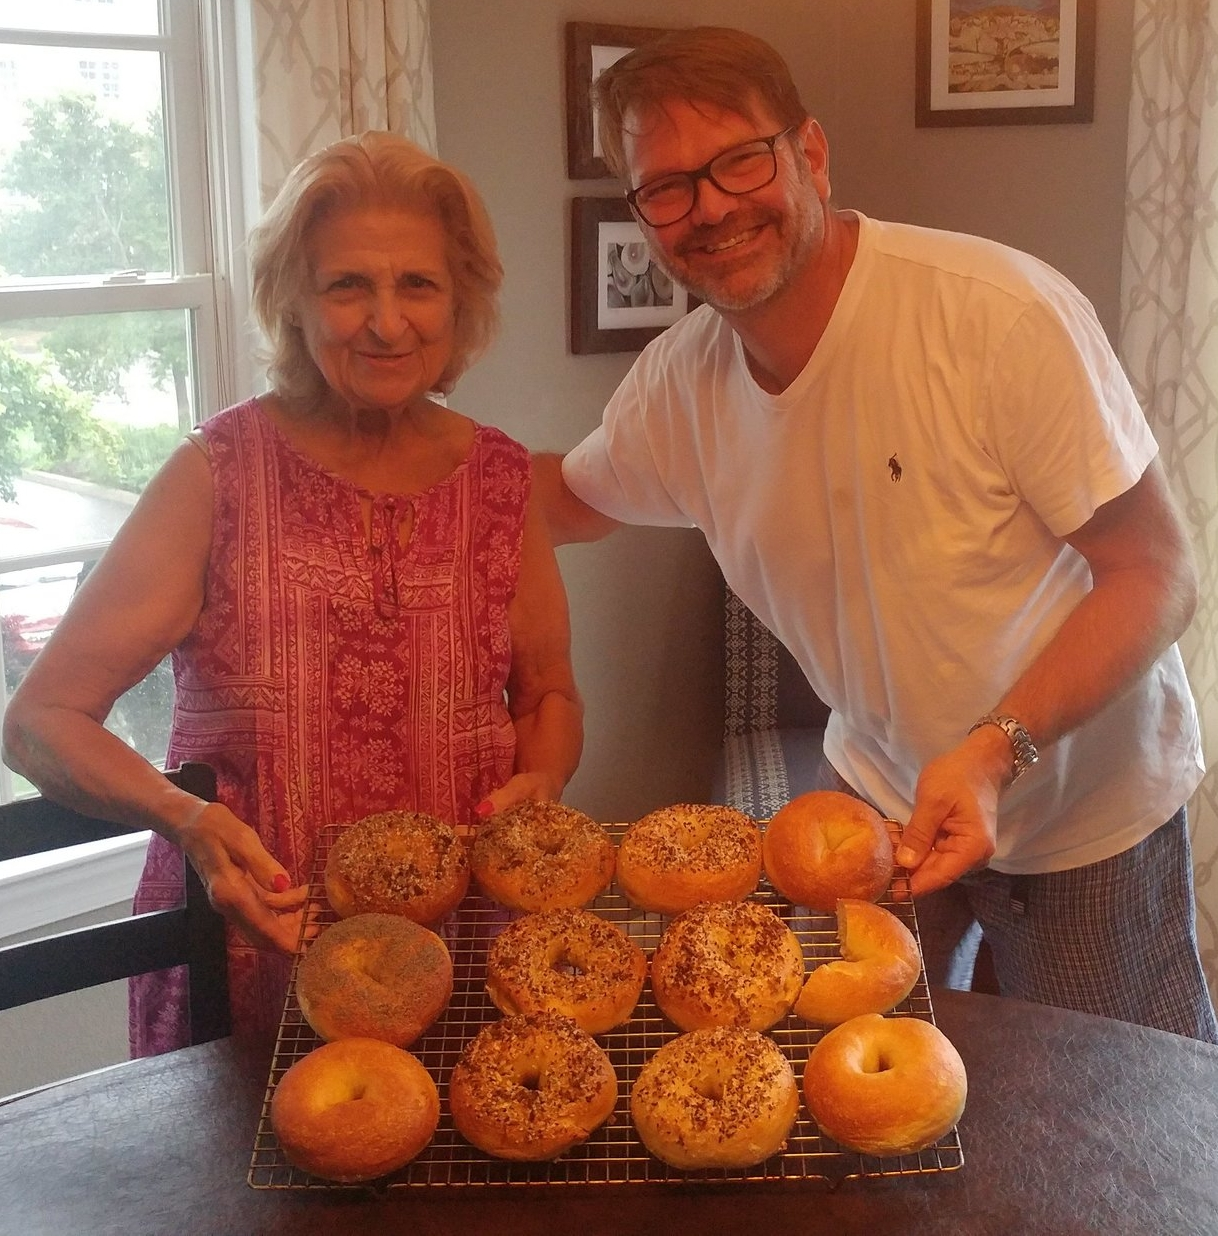 From Saturday. Got some help baking bagels from my mother-in-law, Nilza - the inspiration for  Bonus Days . (I think she might be a caregiver.)